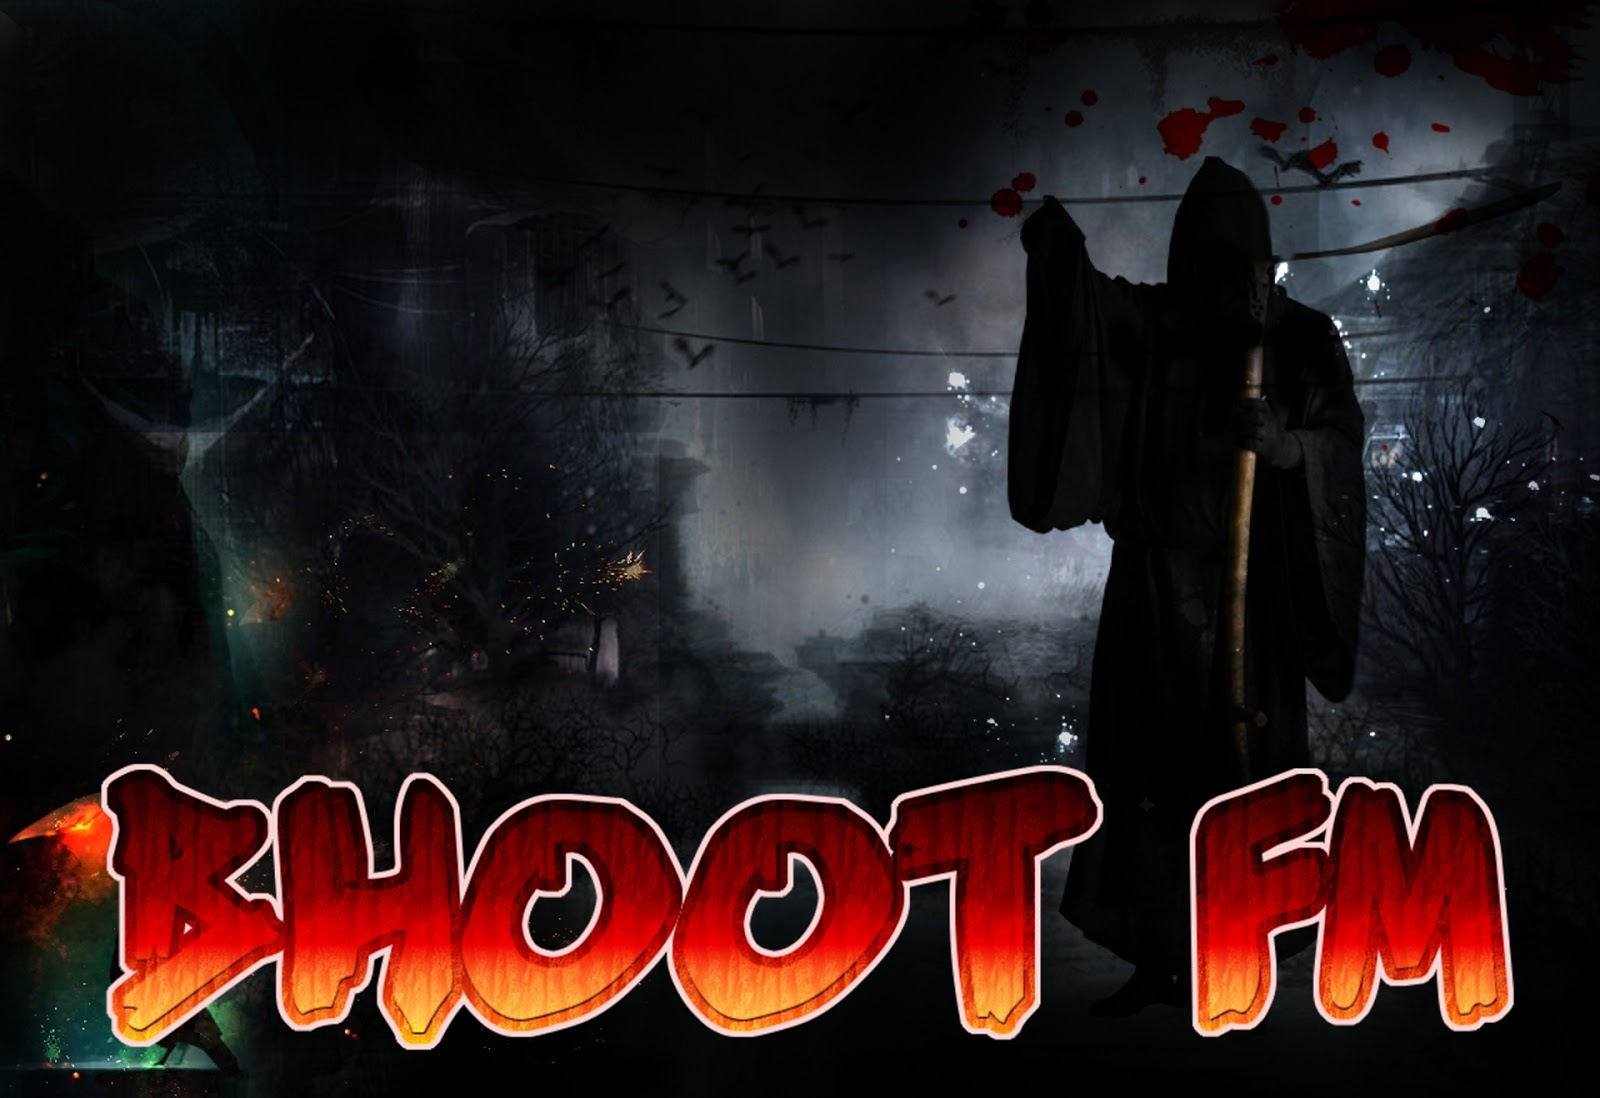 Download Bhoot FM Apr 27, 2018 Recorded Episode